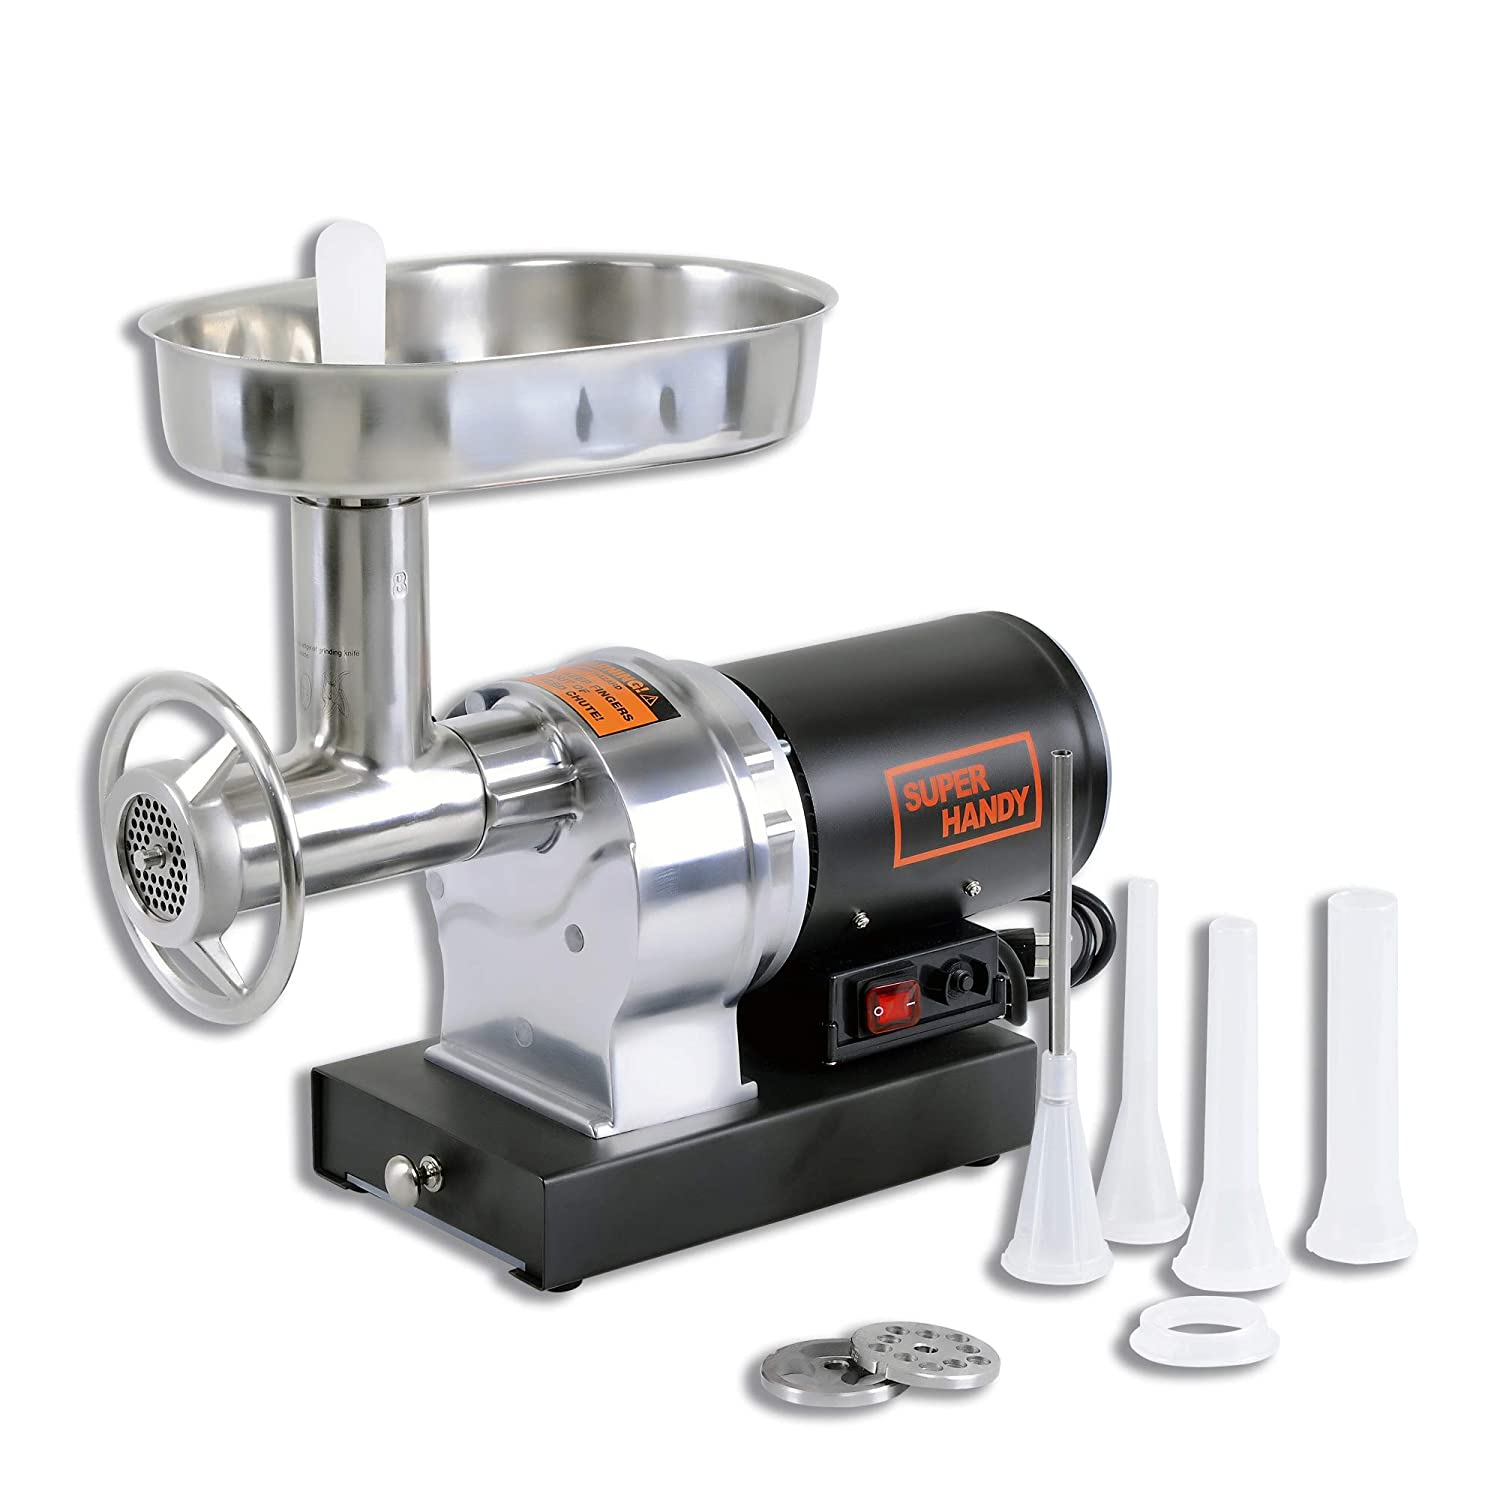 SuperHandy Stainless Steel #8 1/2 HP Electric Meat Grinder Mincer Sausage Stuffer 480lbs Per Hour Heavy Duty Commercial & Kitchen SS Blade, Pan, Grinding Plates & Stuffing Tubes, Stomper, Storage Box